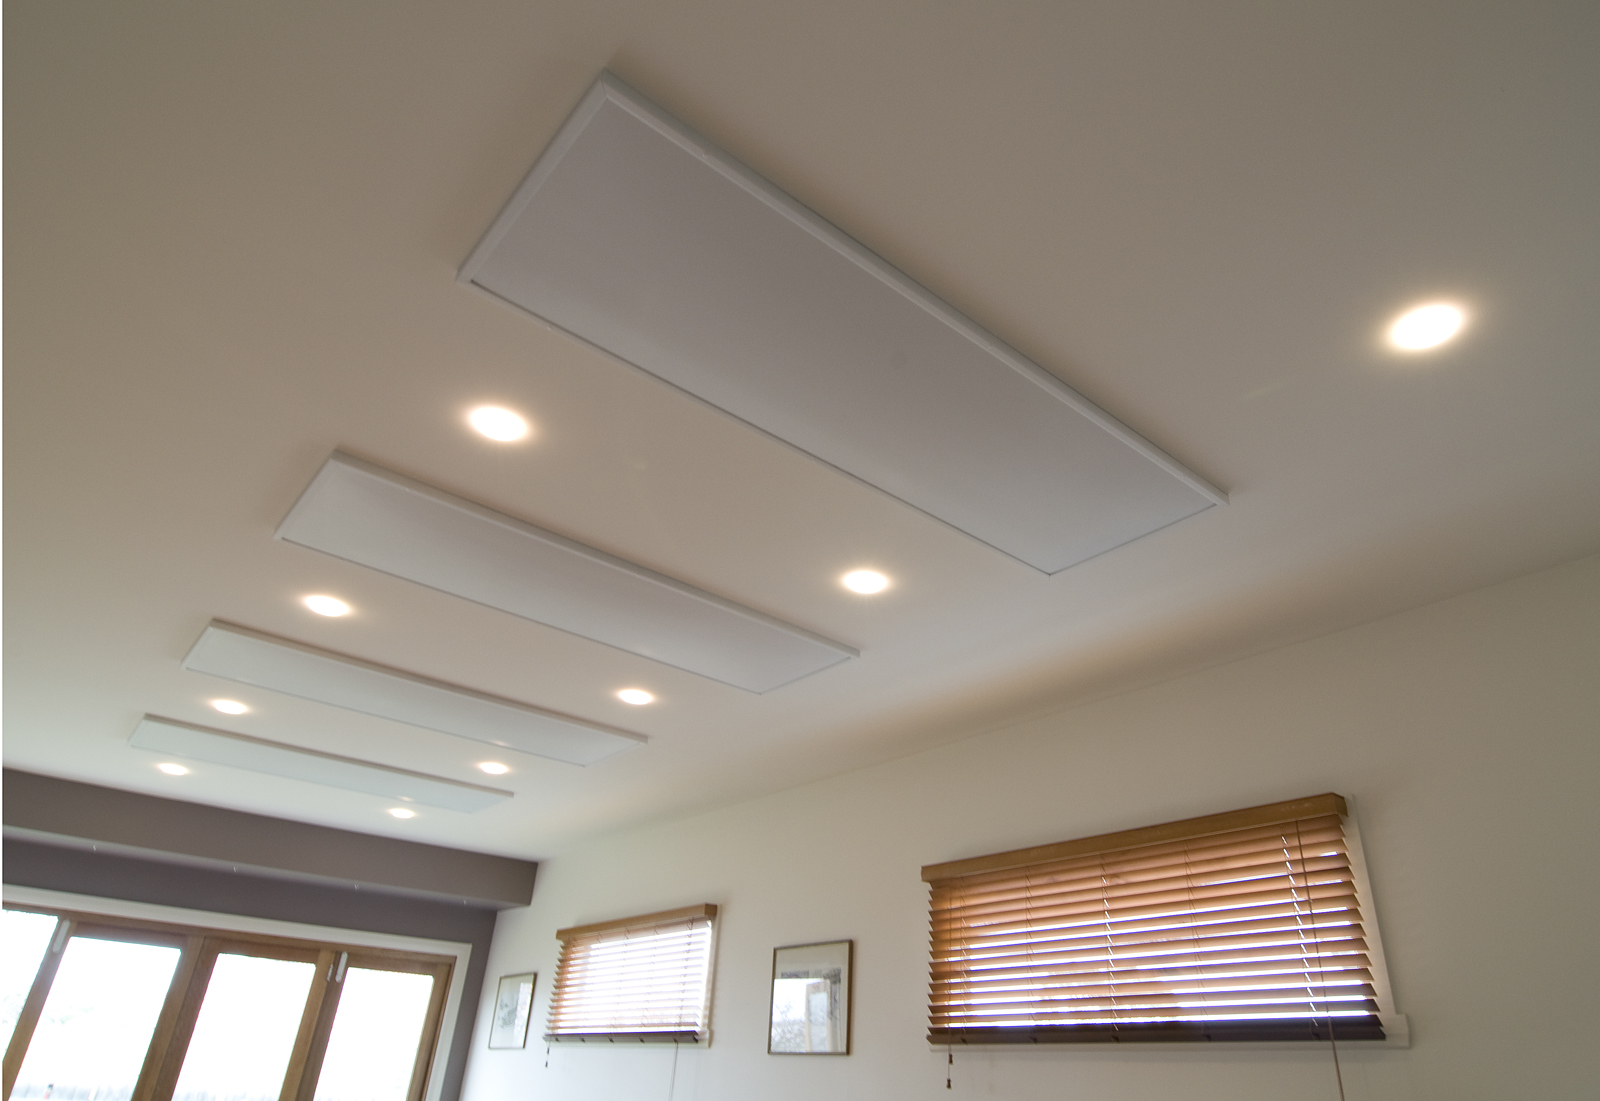 Heat On Radiant Ceiling Heating by The Heating Company  EBOSS